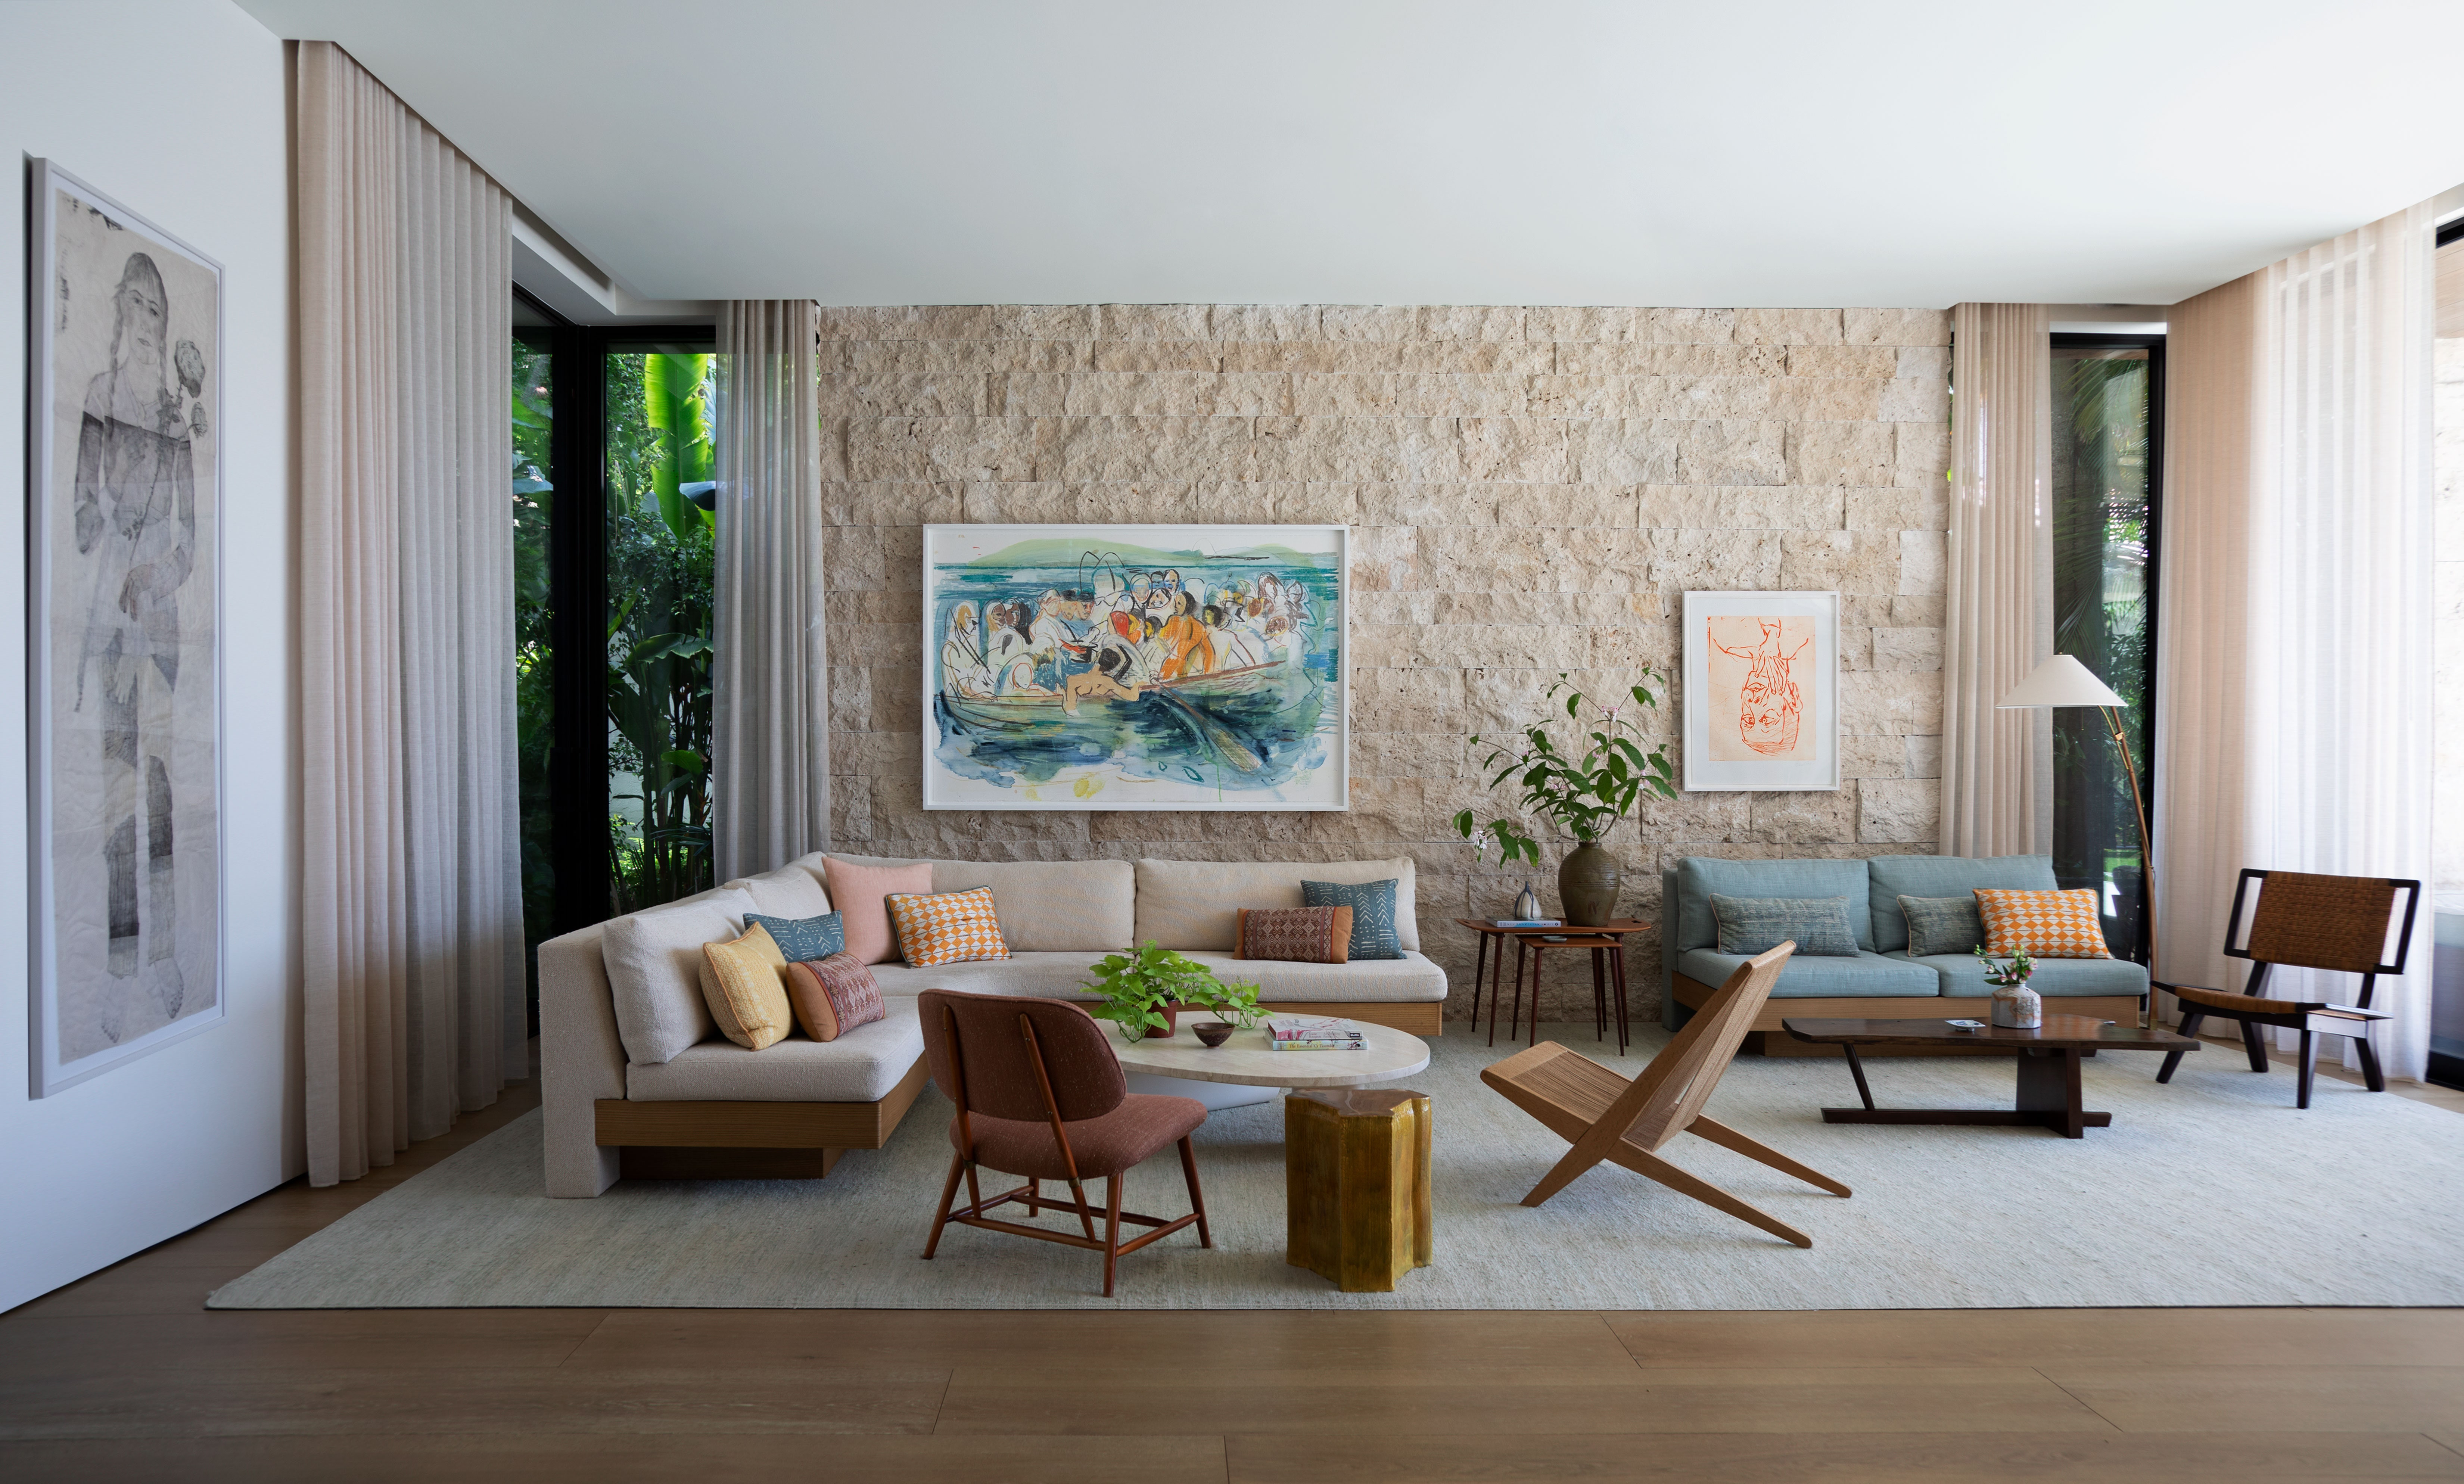 Step Inside a Peaceful Yet Vibrant Miami Home That Was Built Entirely From Scratch